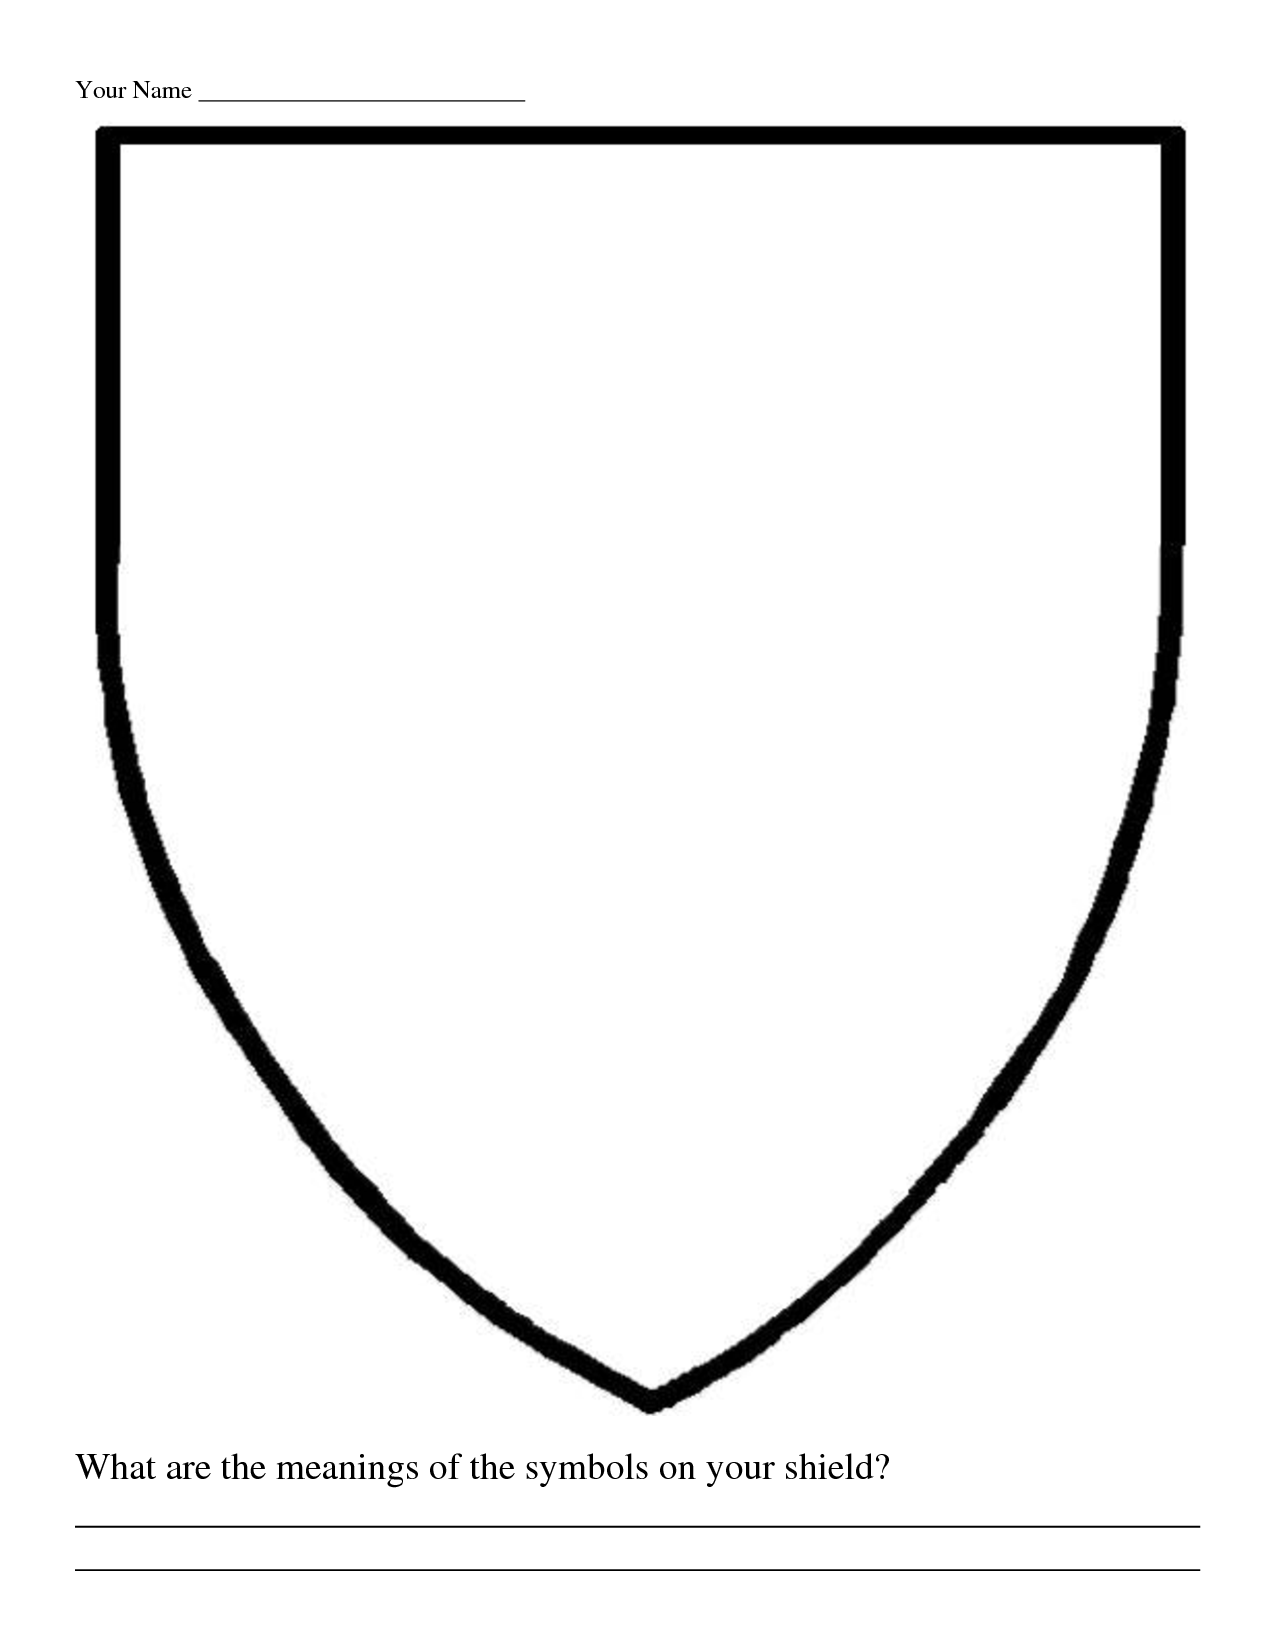 Crest Template Png, png collections at sccpre.cat.